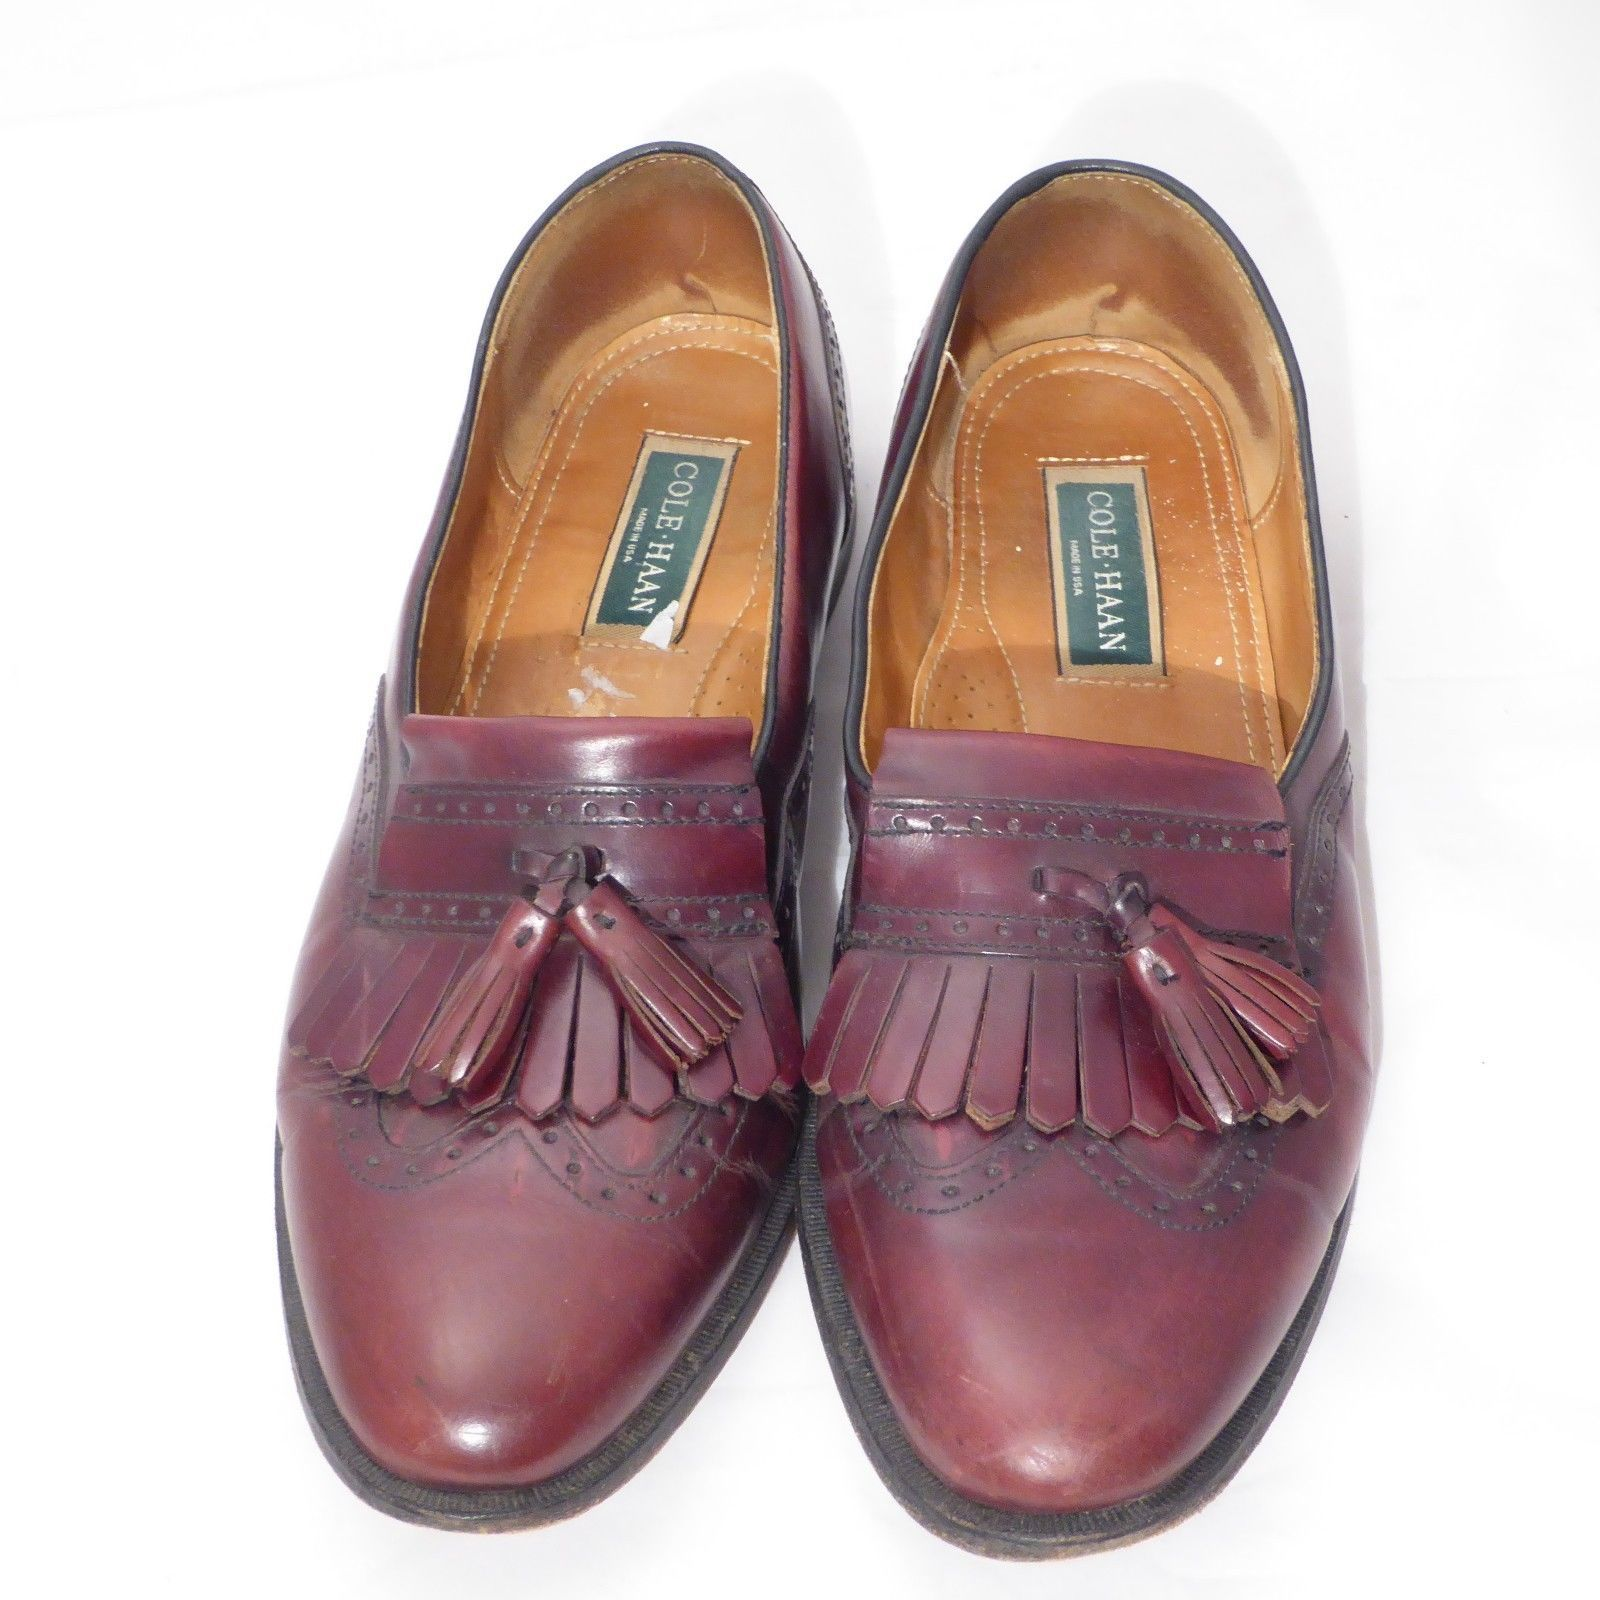 113e4dd4154 57. 57. Previous. Cole Haan USA Burgundy Leather Kiltie Tassel Wingtip  Loafer Dress Shoe Men 13 D